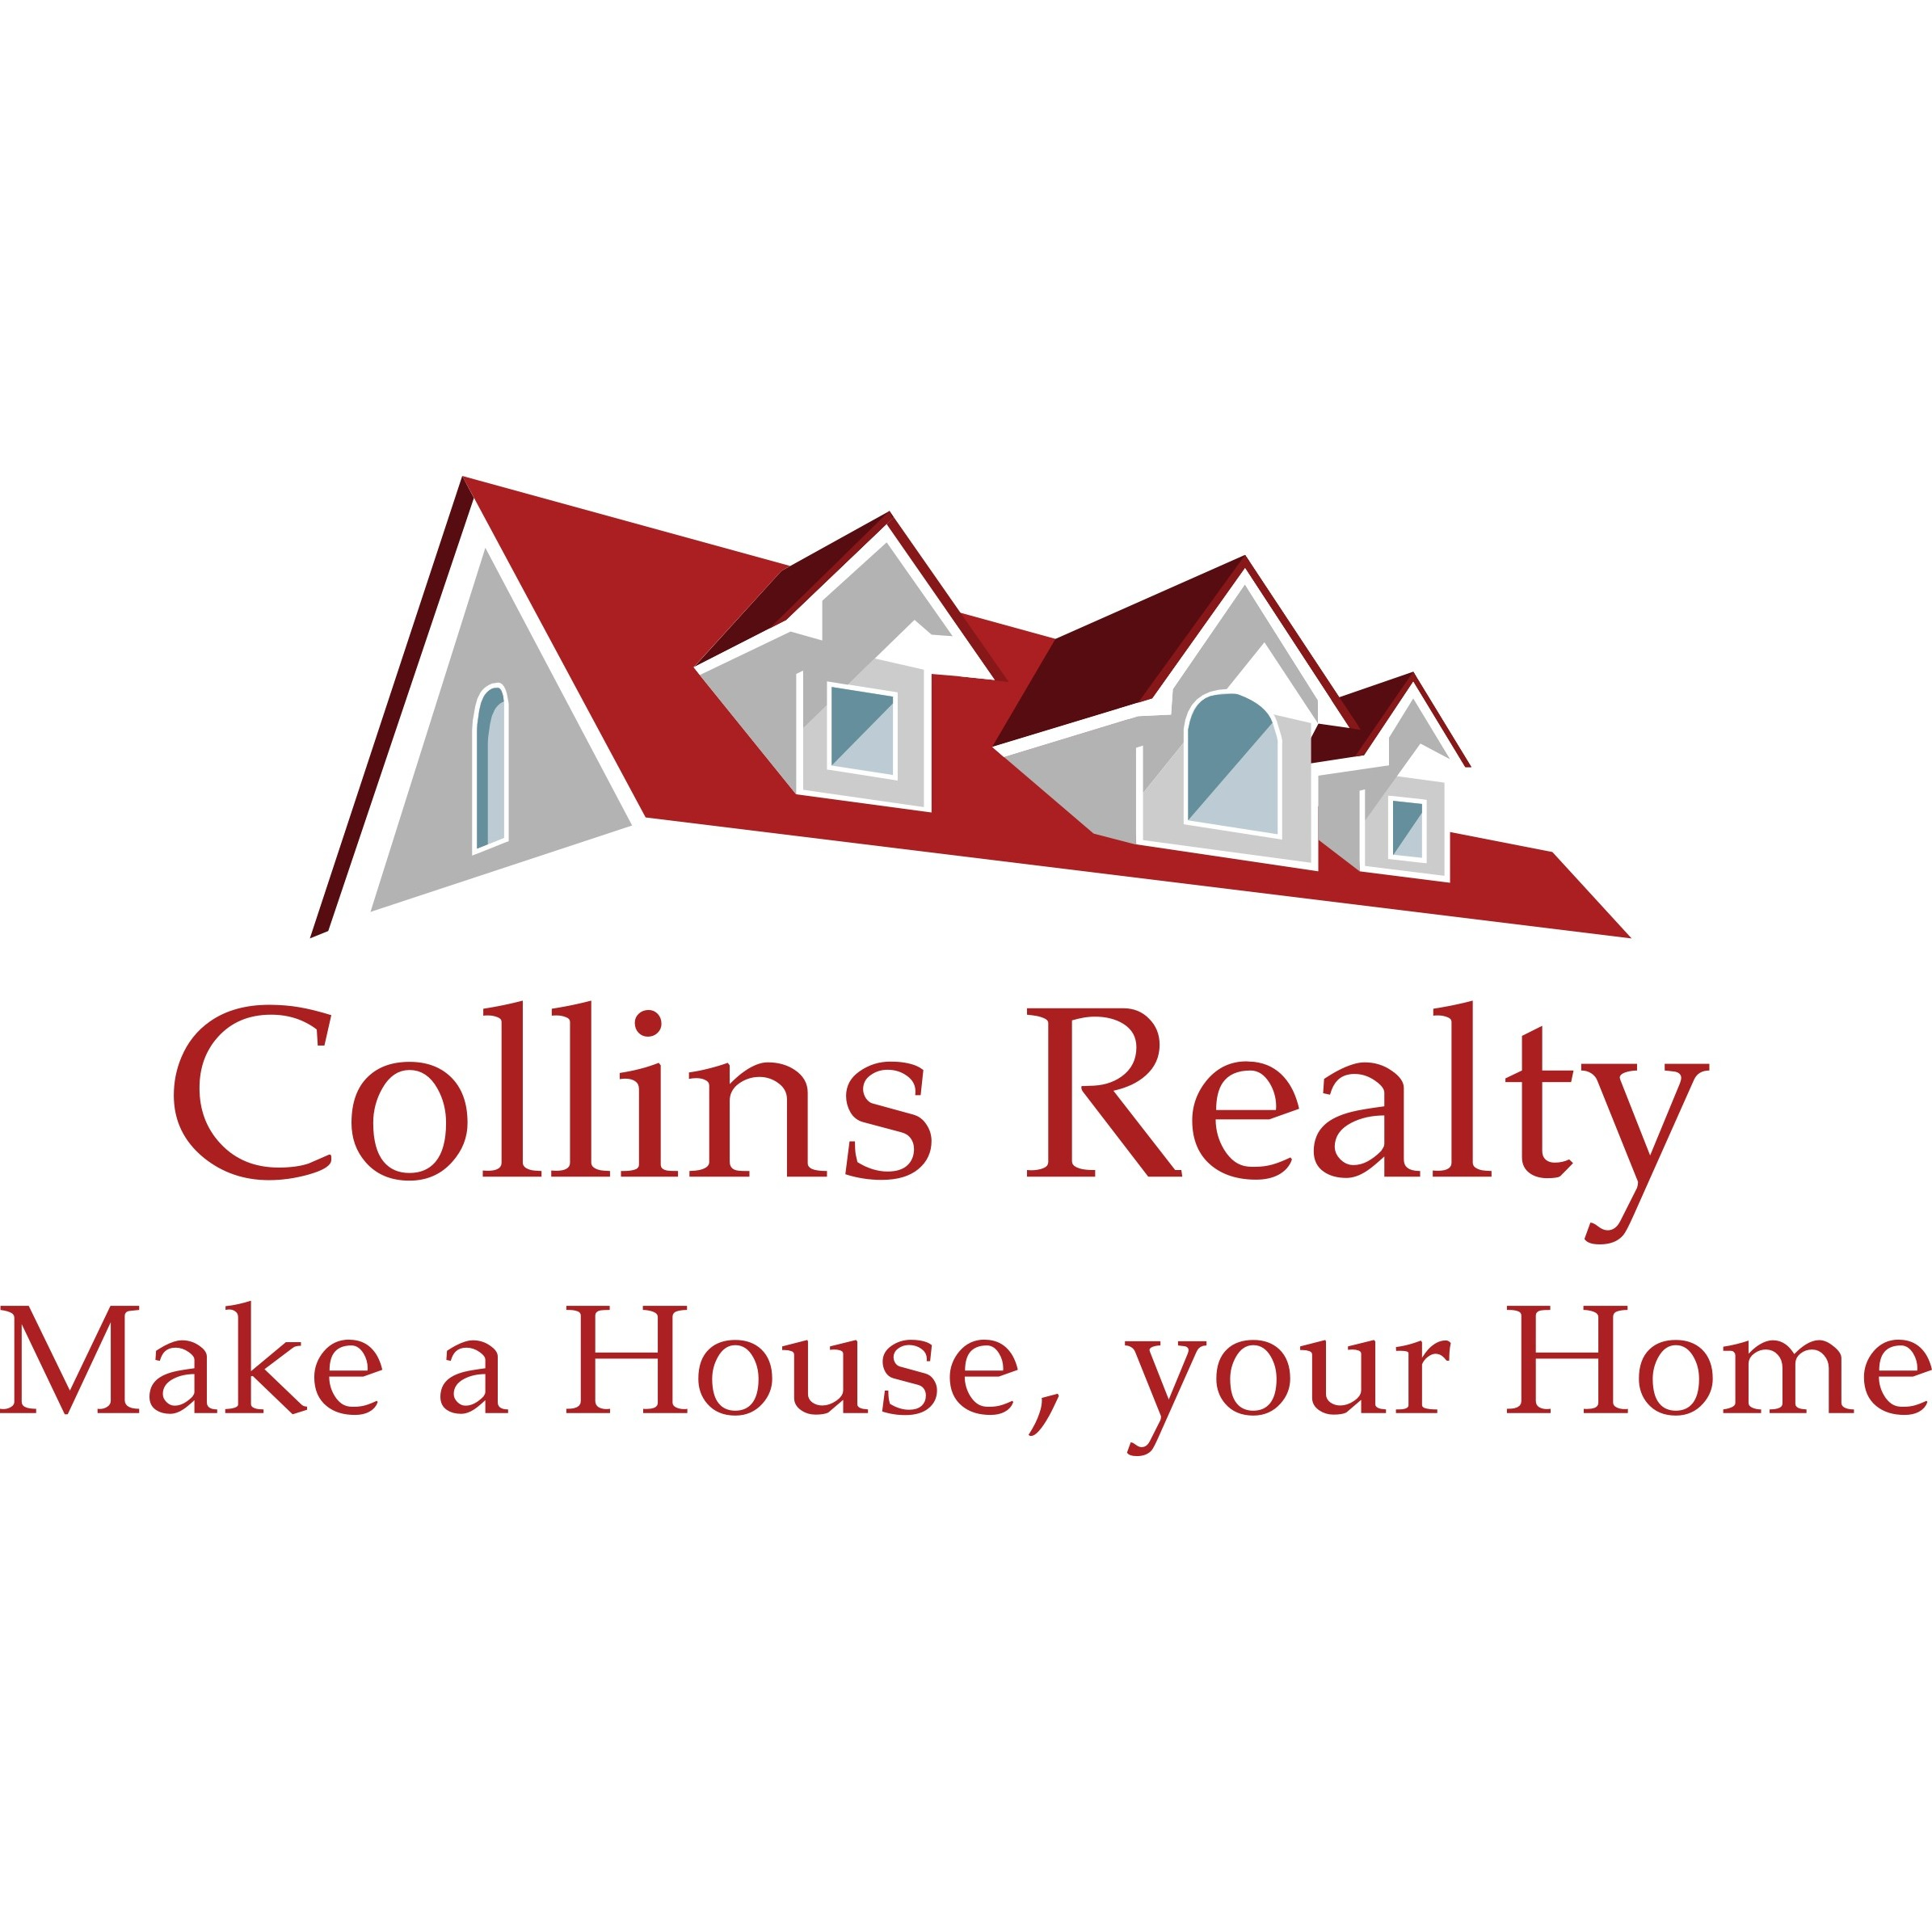 Collins Realty